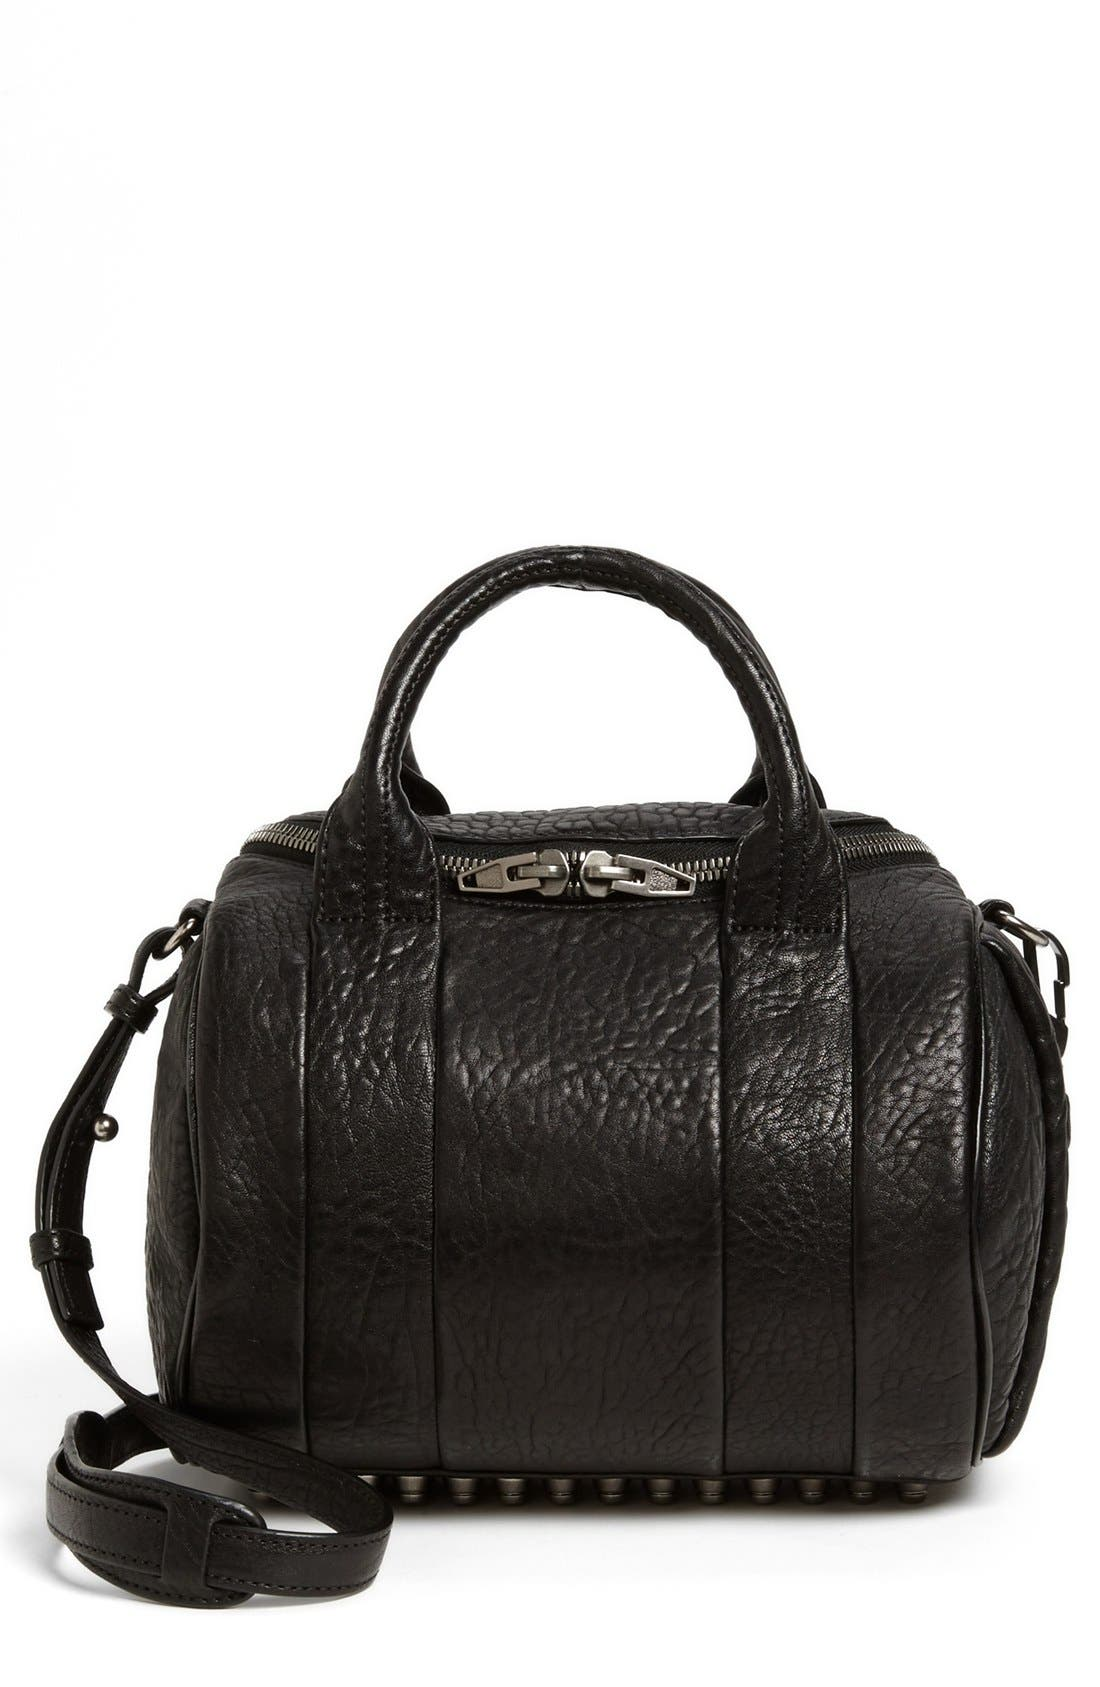 Alternate Image 1 Selected - Alexander Wang 'Rockie - Black Nickel' Leather Crossbody Satchel